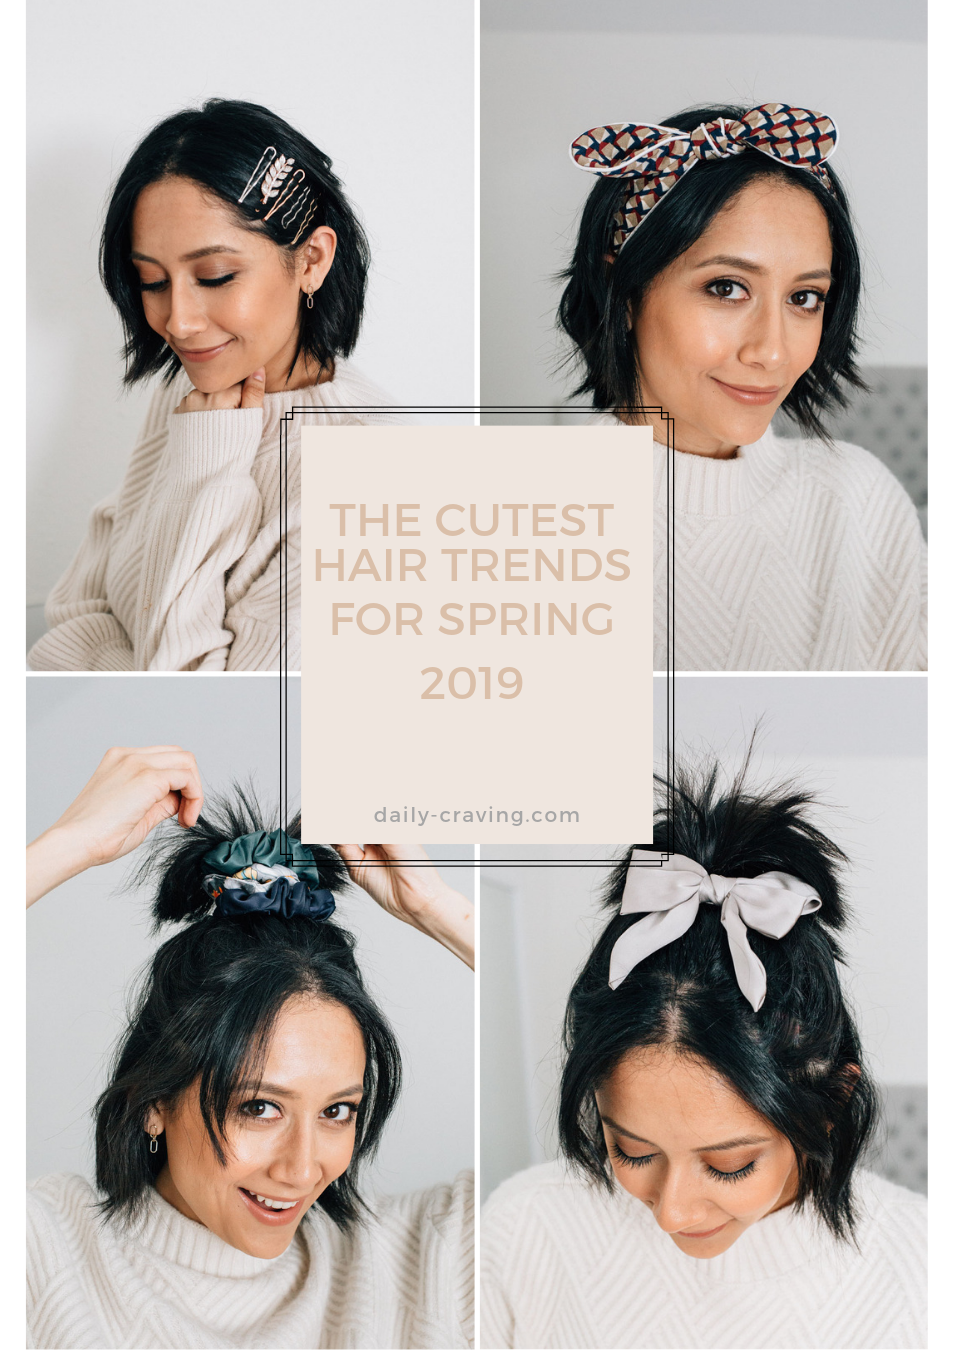 The Cutest Hair Trends For Spring 2019